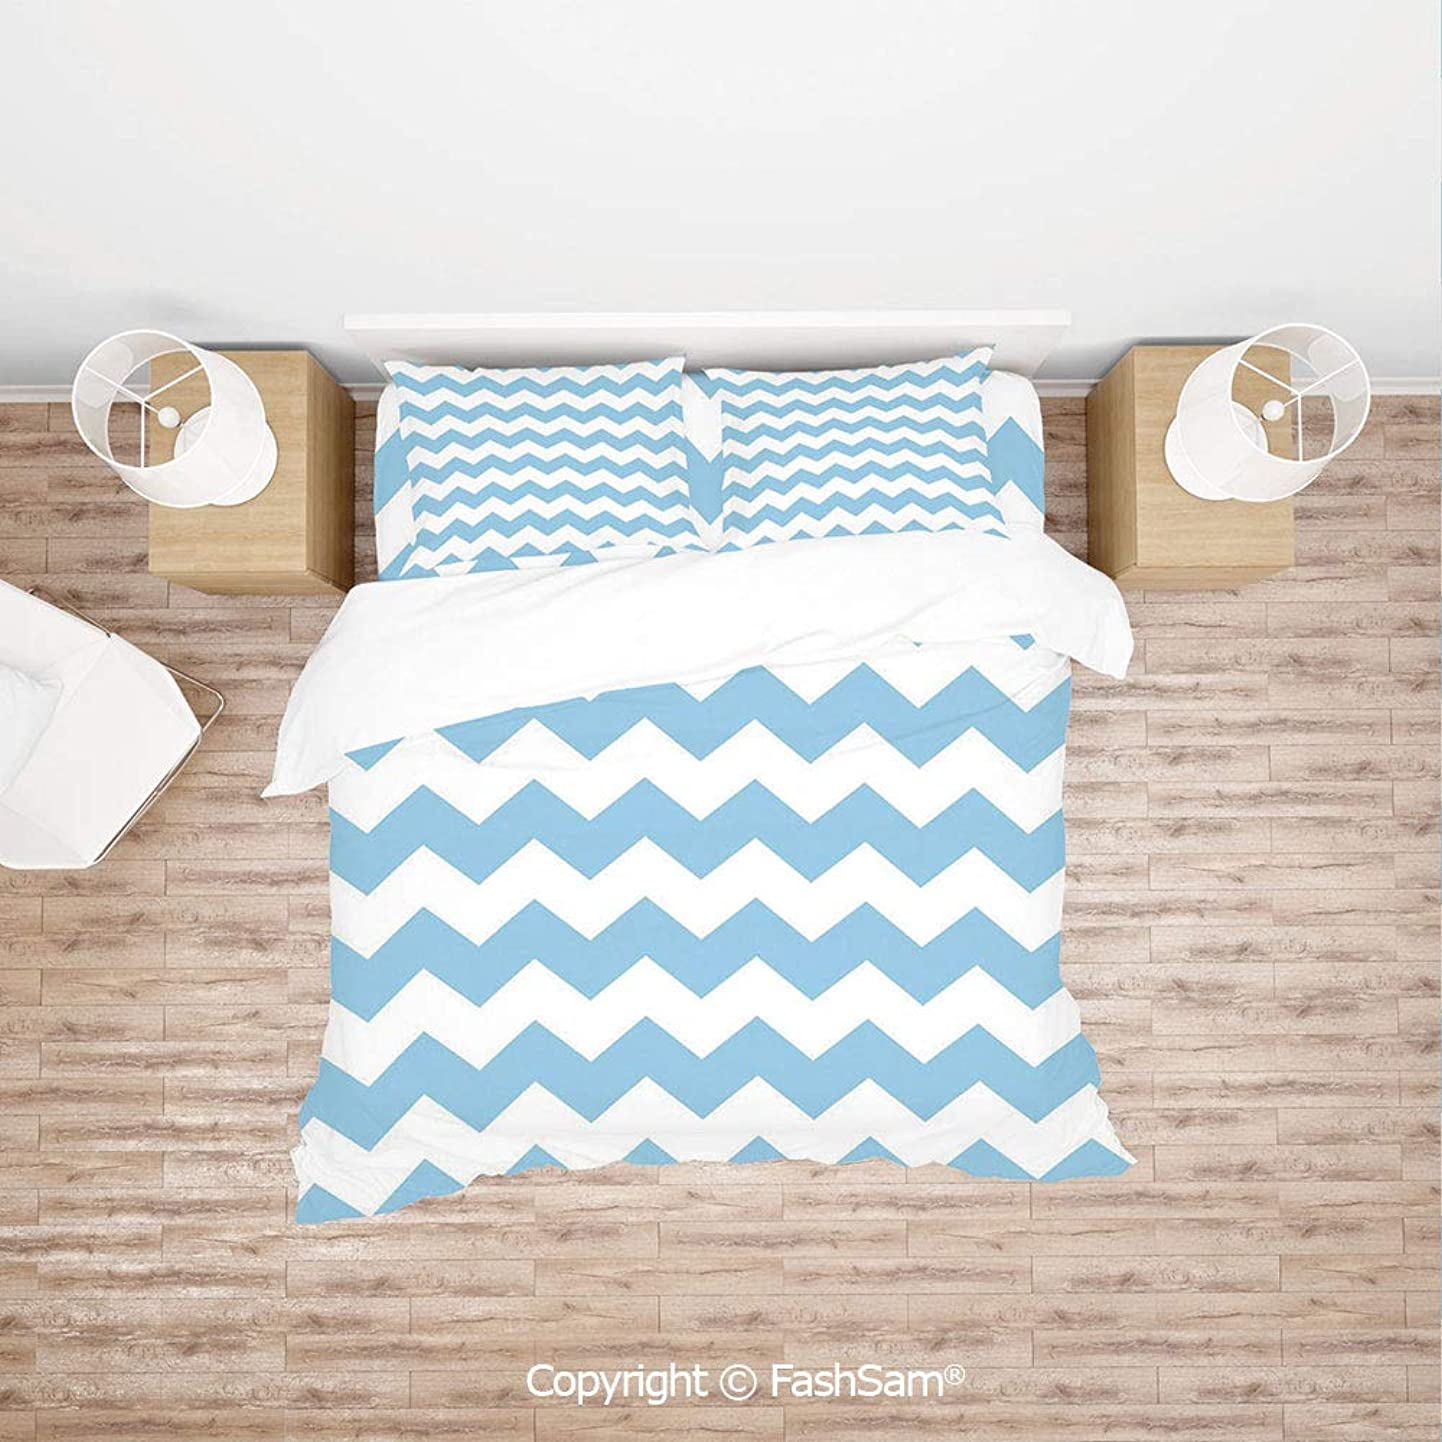 FashSam Duvet Cover 4 Pcs Comforter Cover Set Old Fashioned Classic Chevron Zigzags Baby Kids Room Nursey Themed Tile Decorative for Boys Grils Kids(Queen) ajrioubfsza1